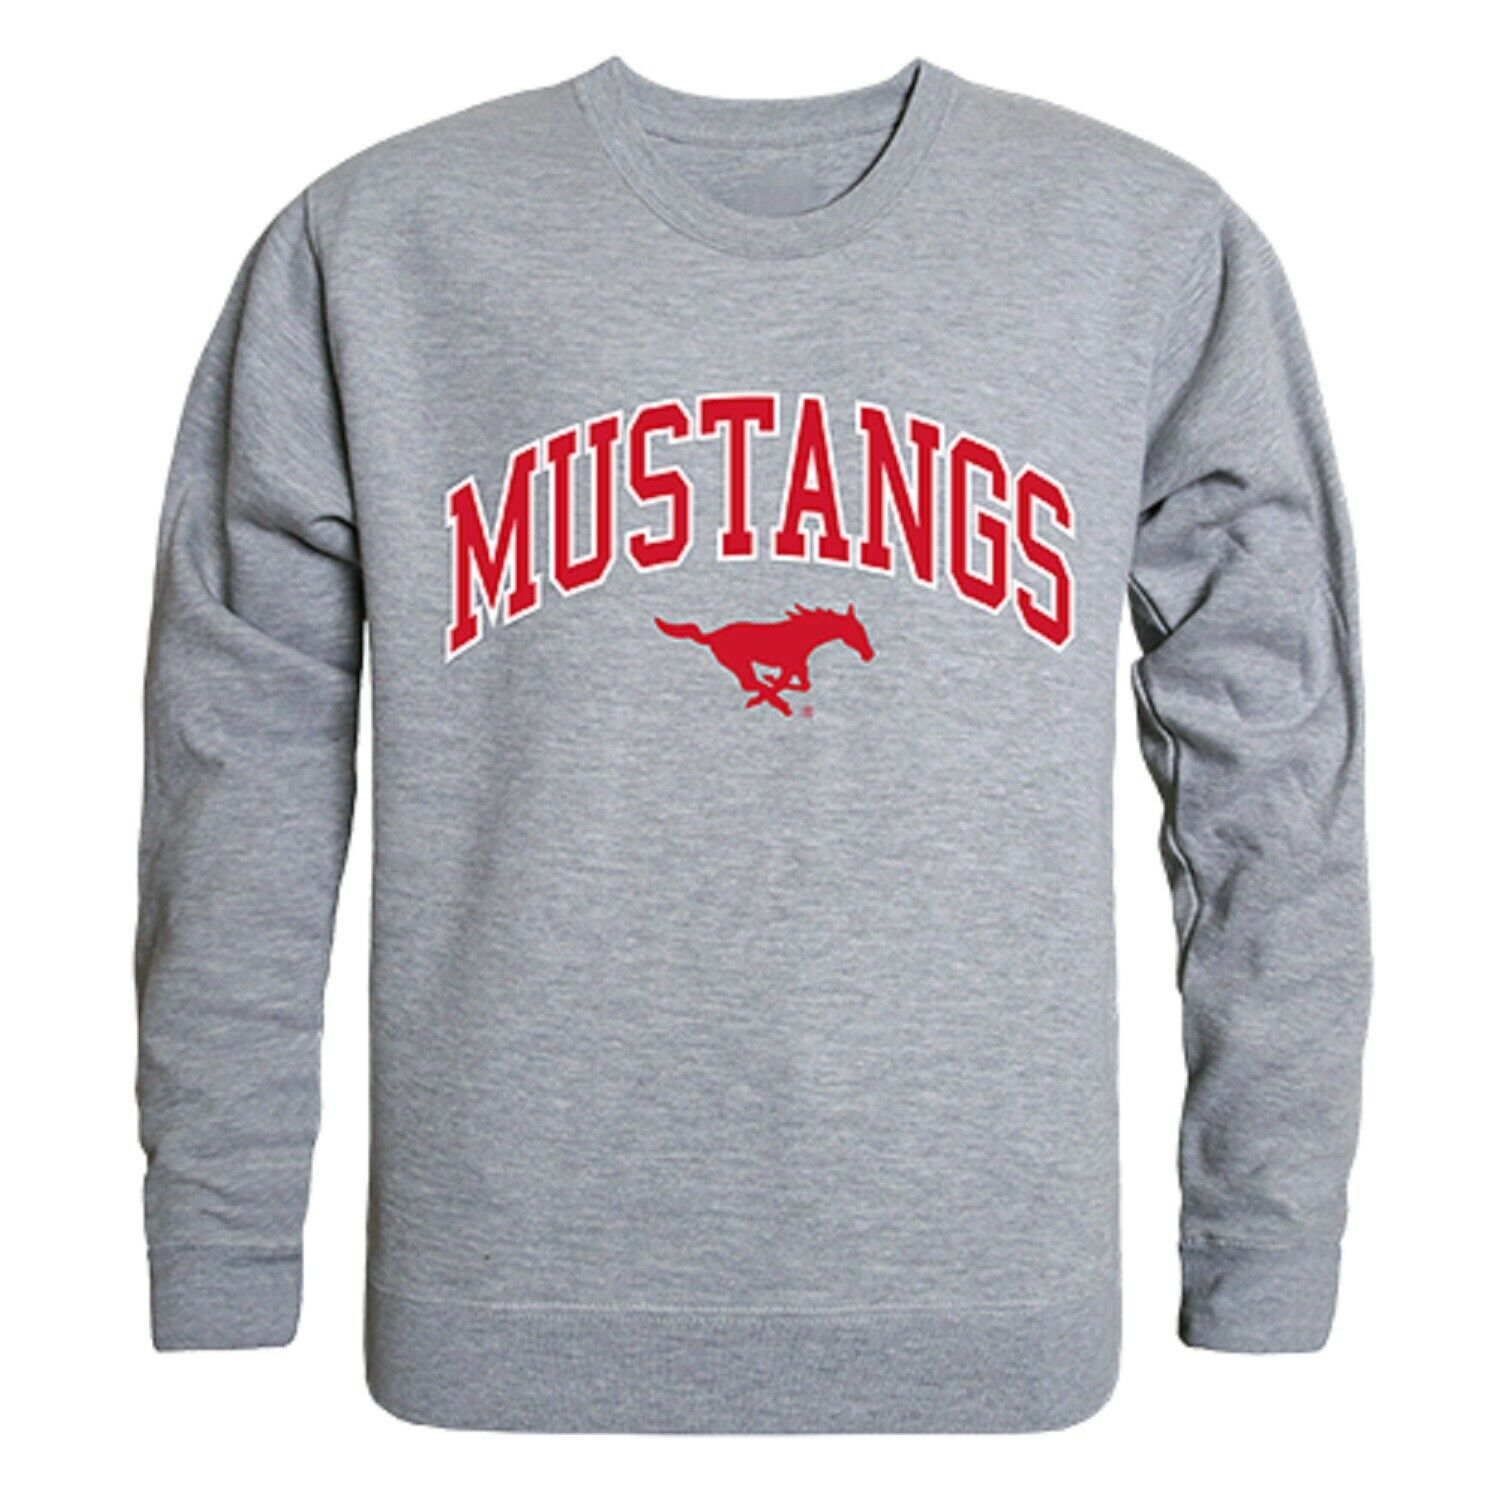 Southern Methodist University Mustangs SMU Sweater - Officially Licensed